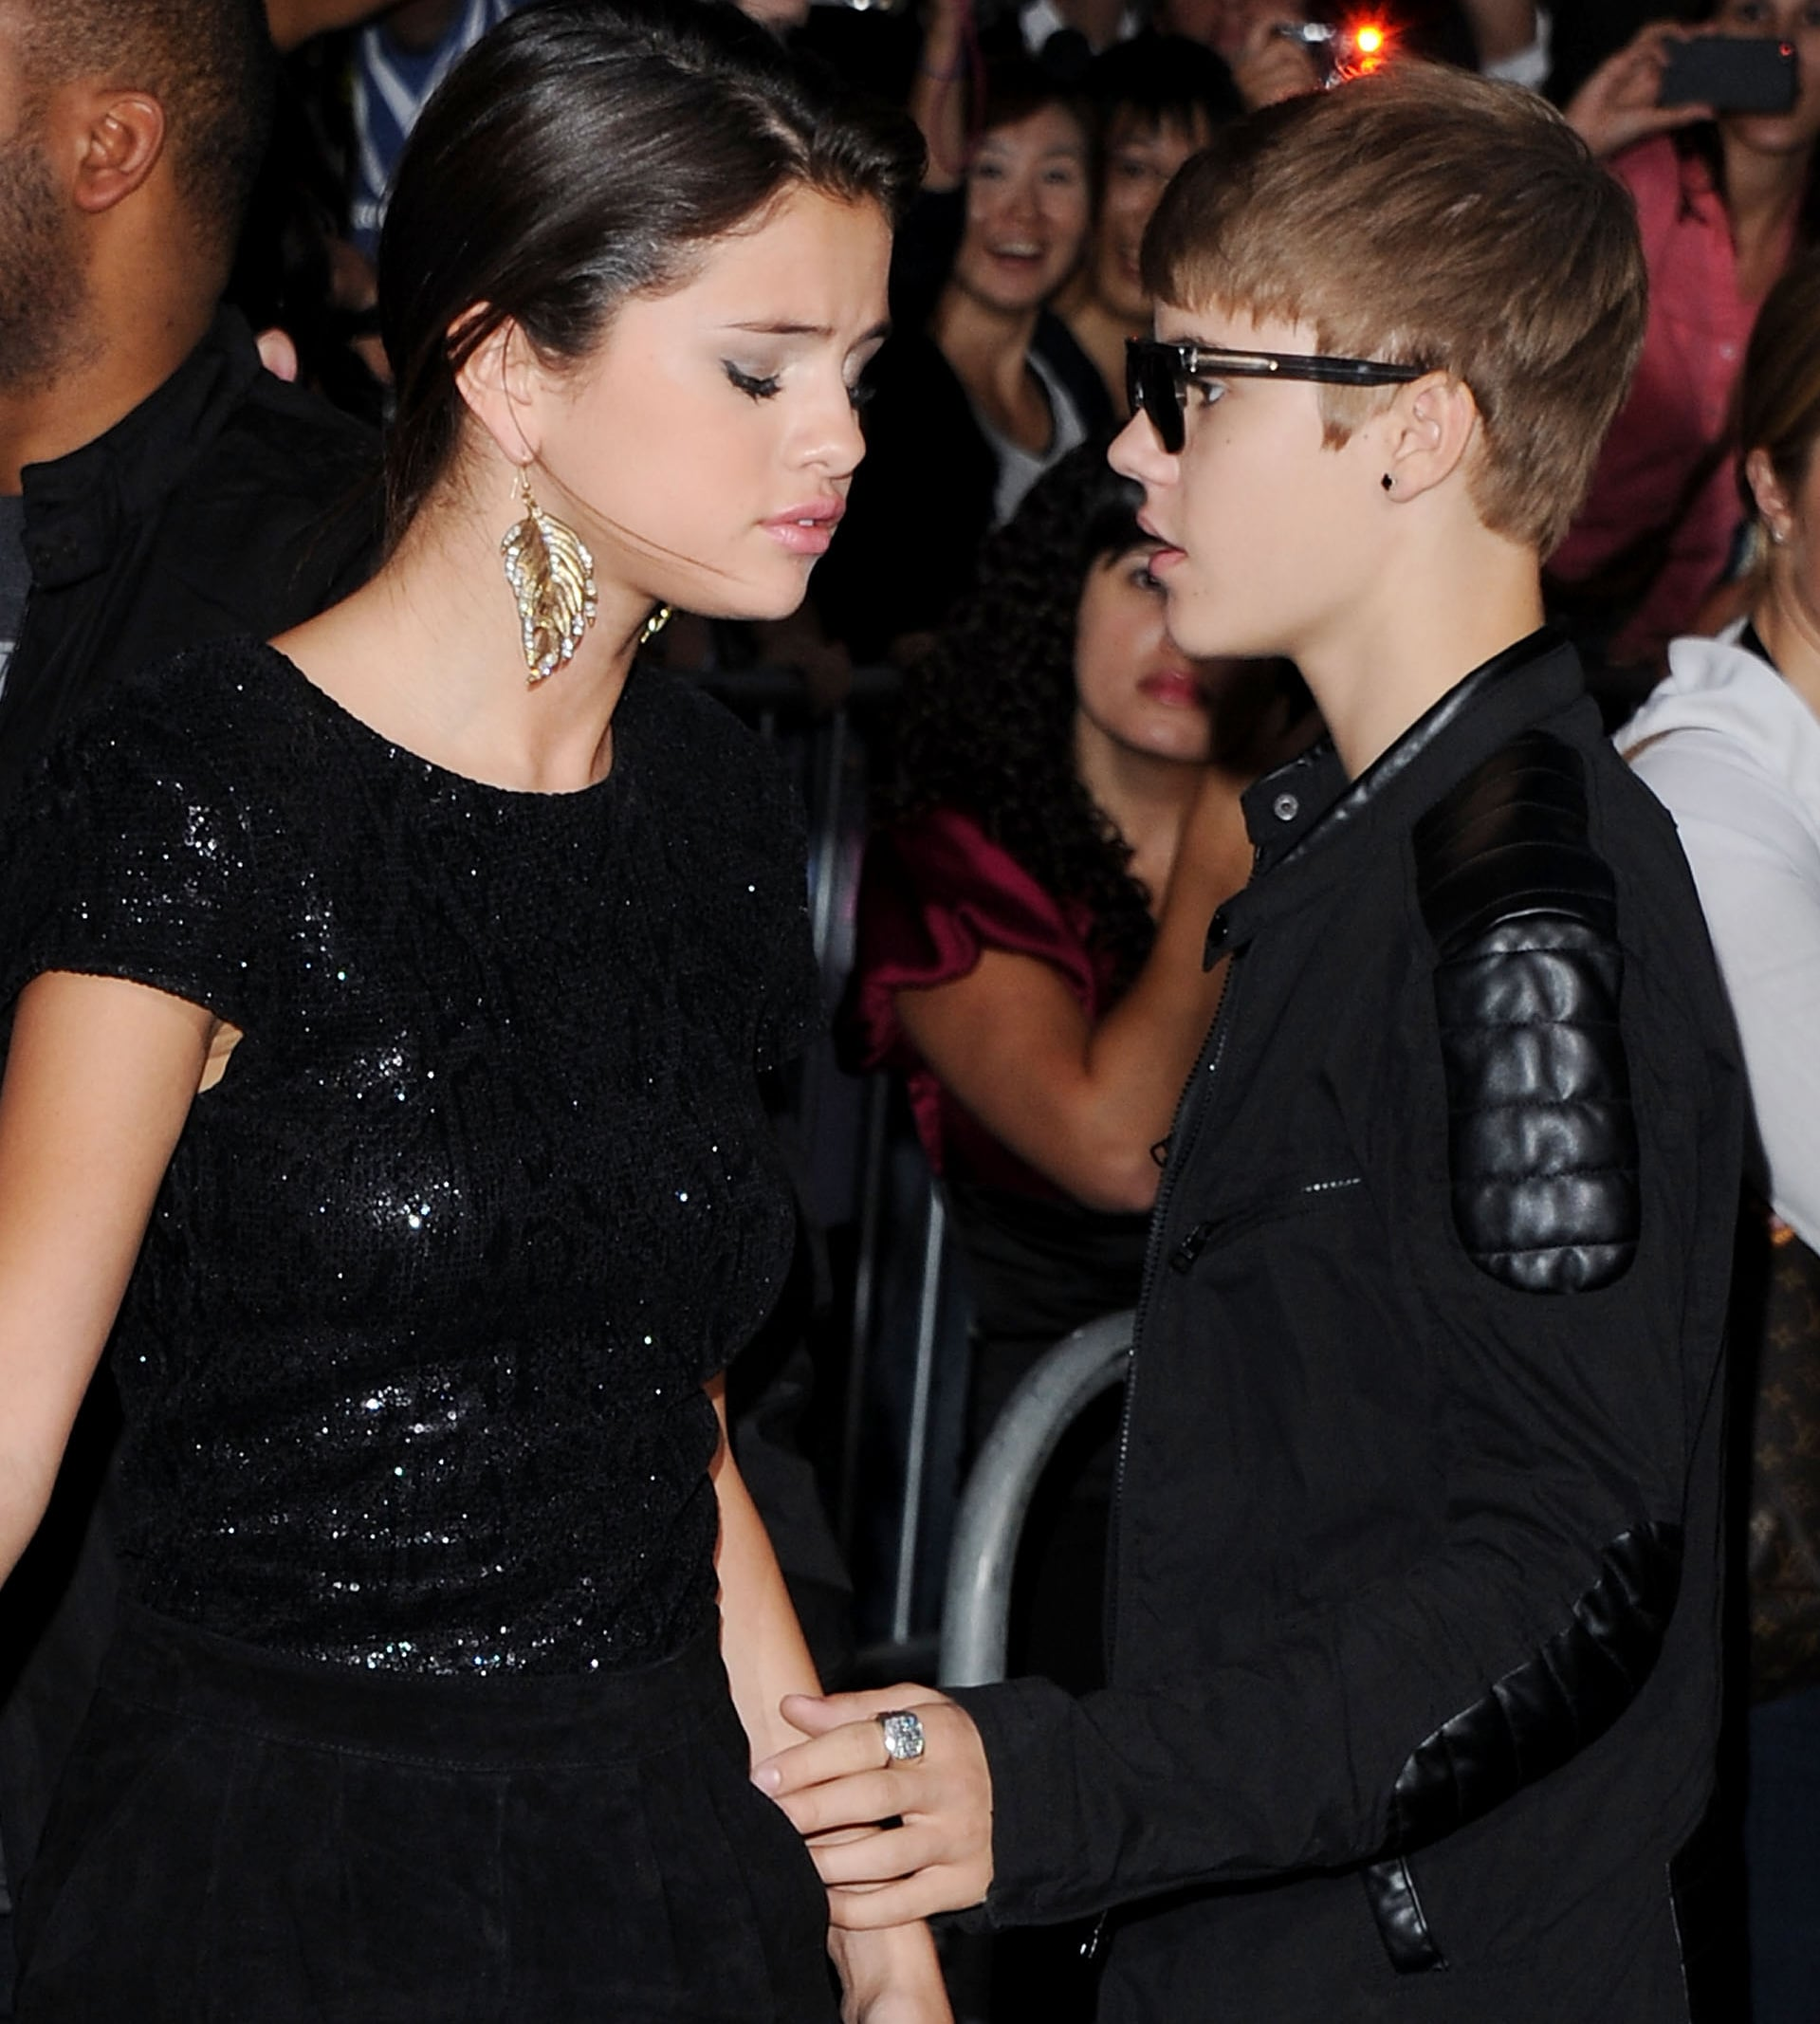 Selena gomez and justin bieber dating dress up